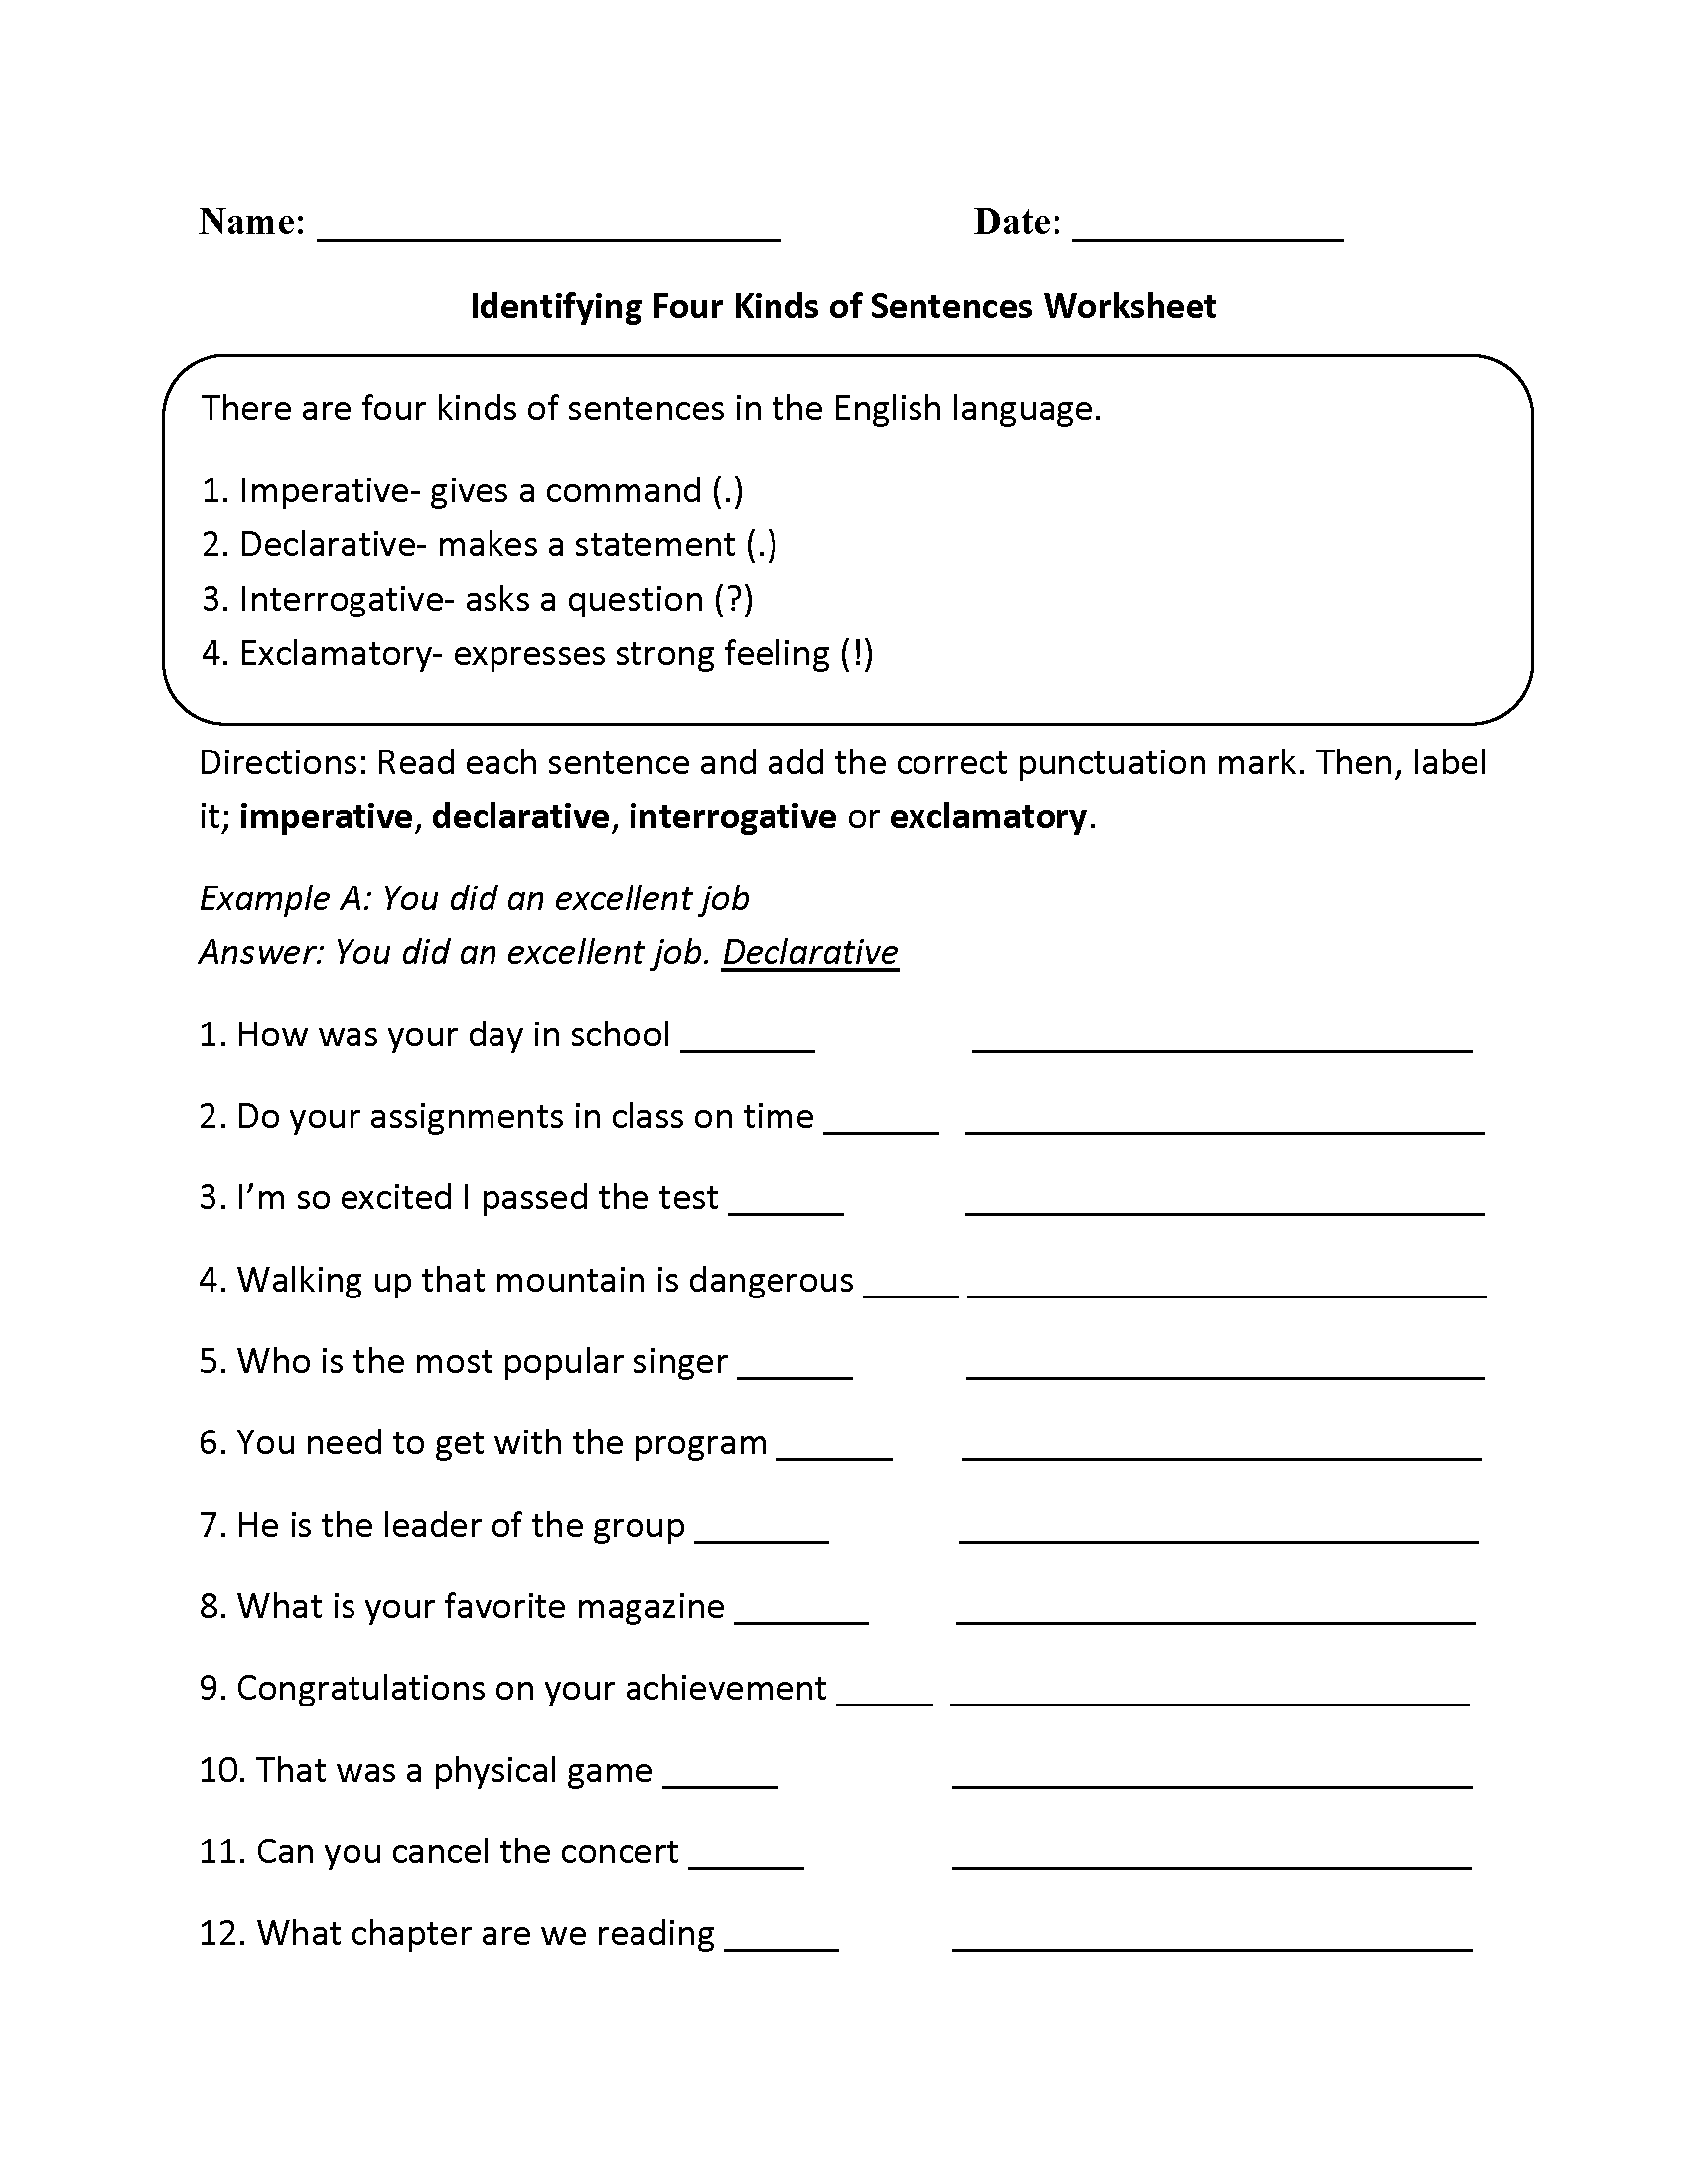 Printables Imperative And Exclamatory Sentences Worksheet sentences worksheets kinds of four worksheet